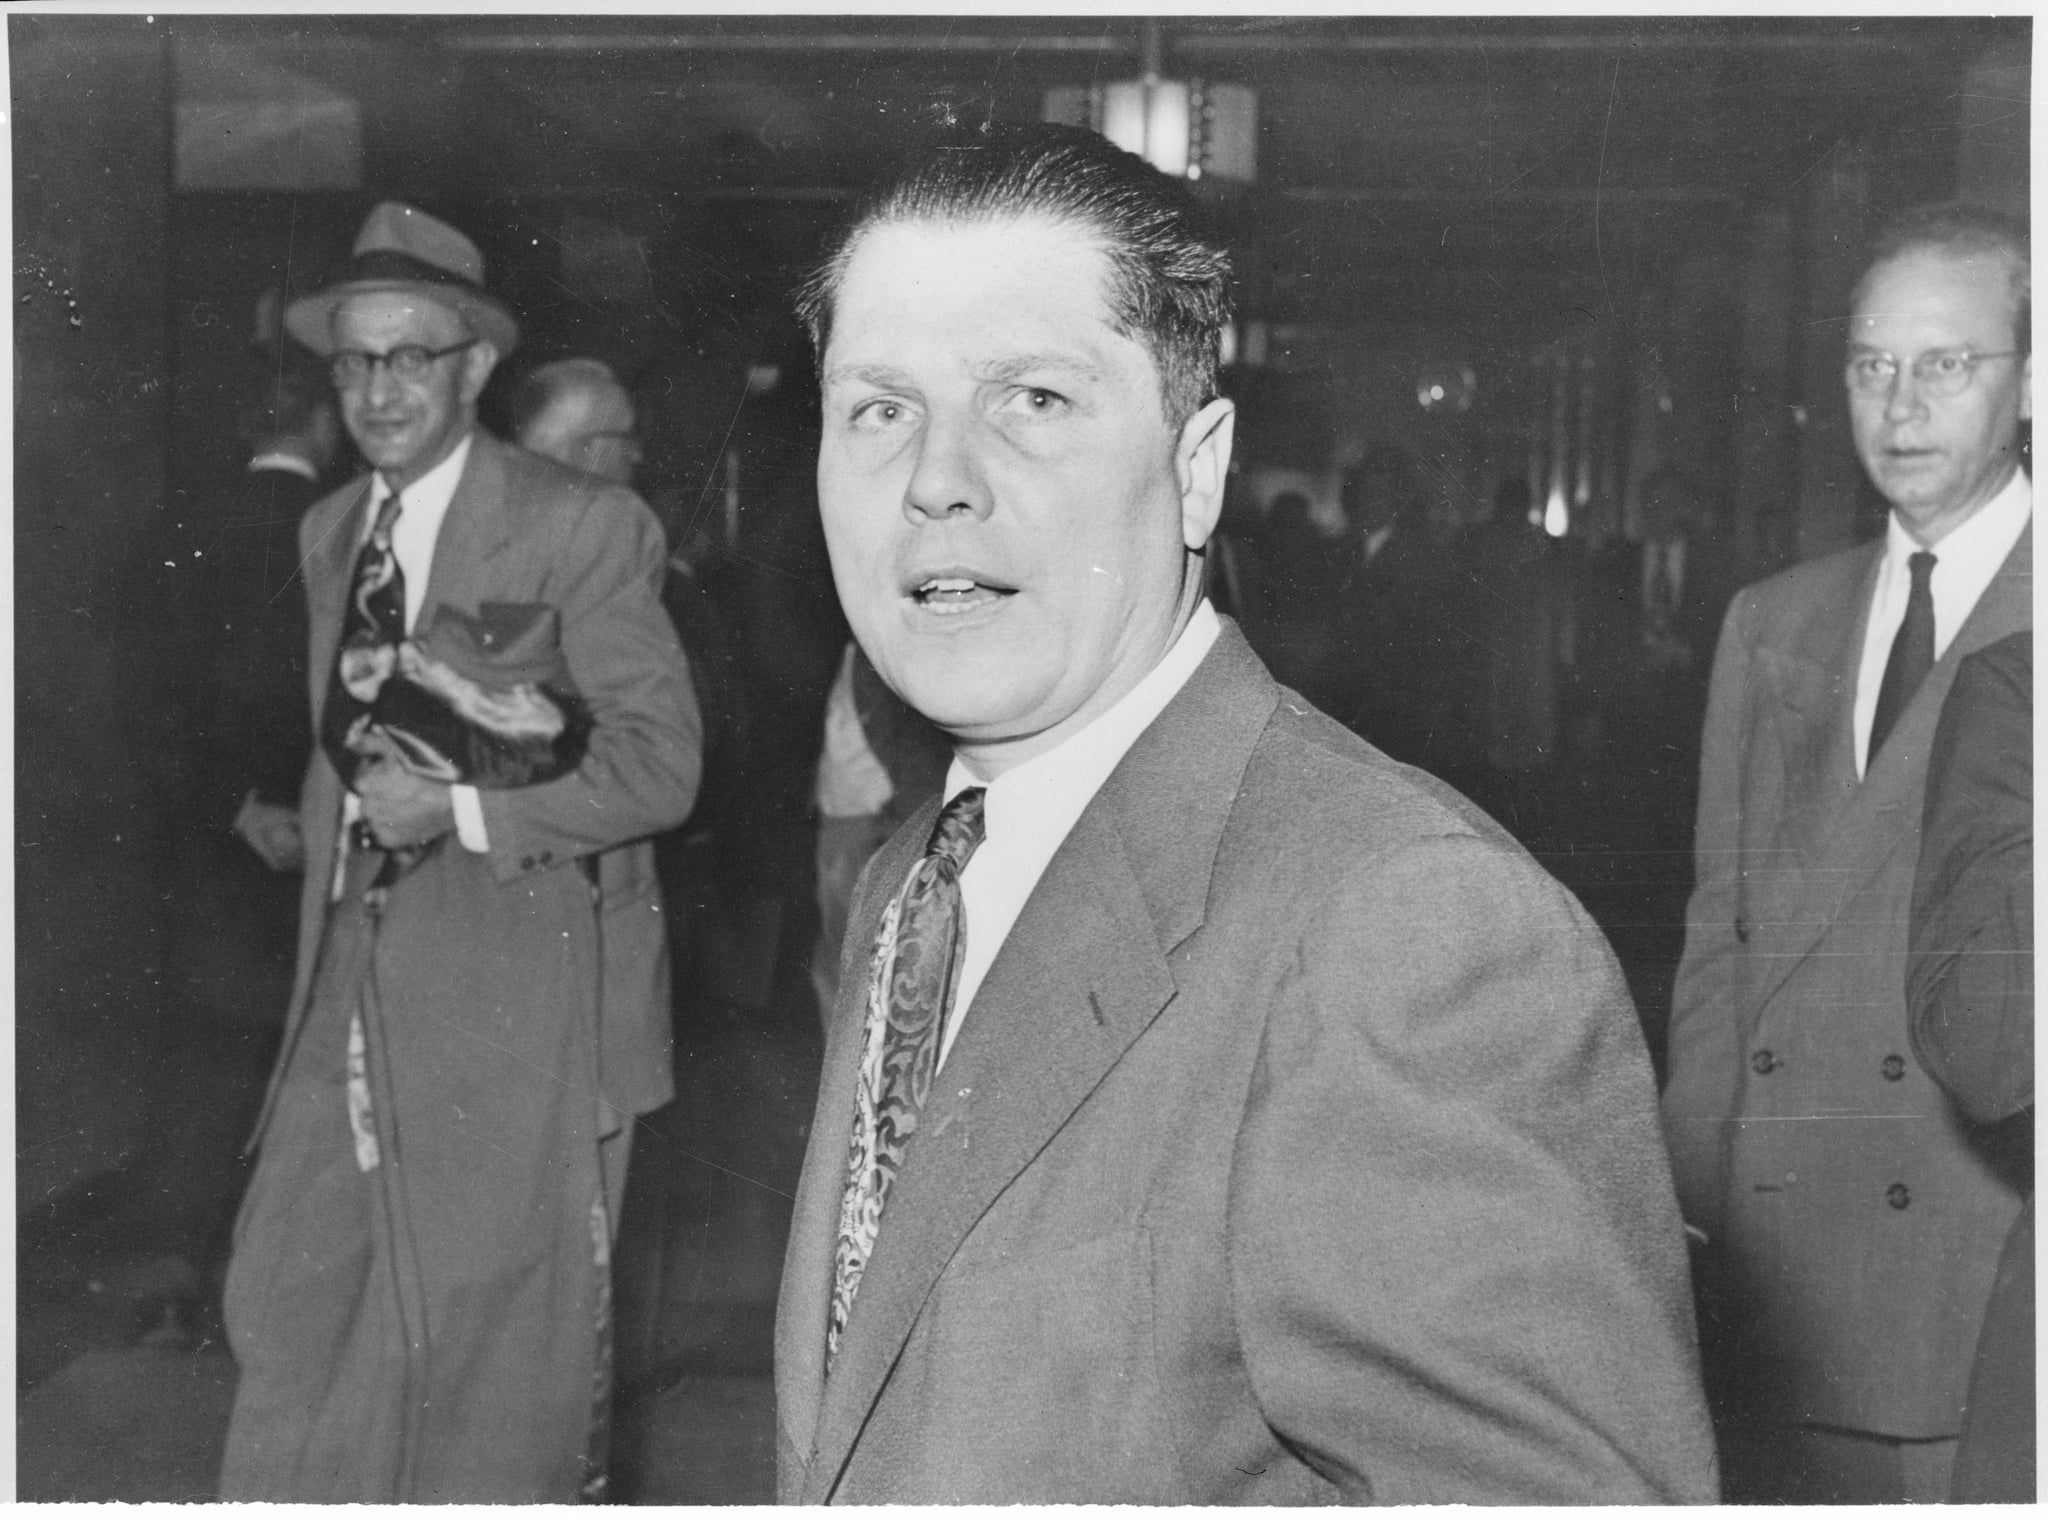 (Original Caption) F.B.I. arrested James Hoffa here March 13, 1957 (shown here in a 1953 photo), Vice President of the Teamsters Union, on charges of bribery. Hoffa is charged with bribing a New York attorney to secure data from the files of the Special Senate Committee on Racketeering.